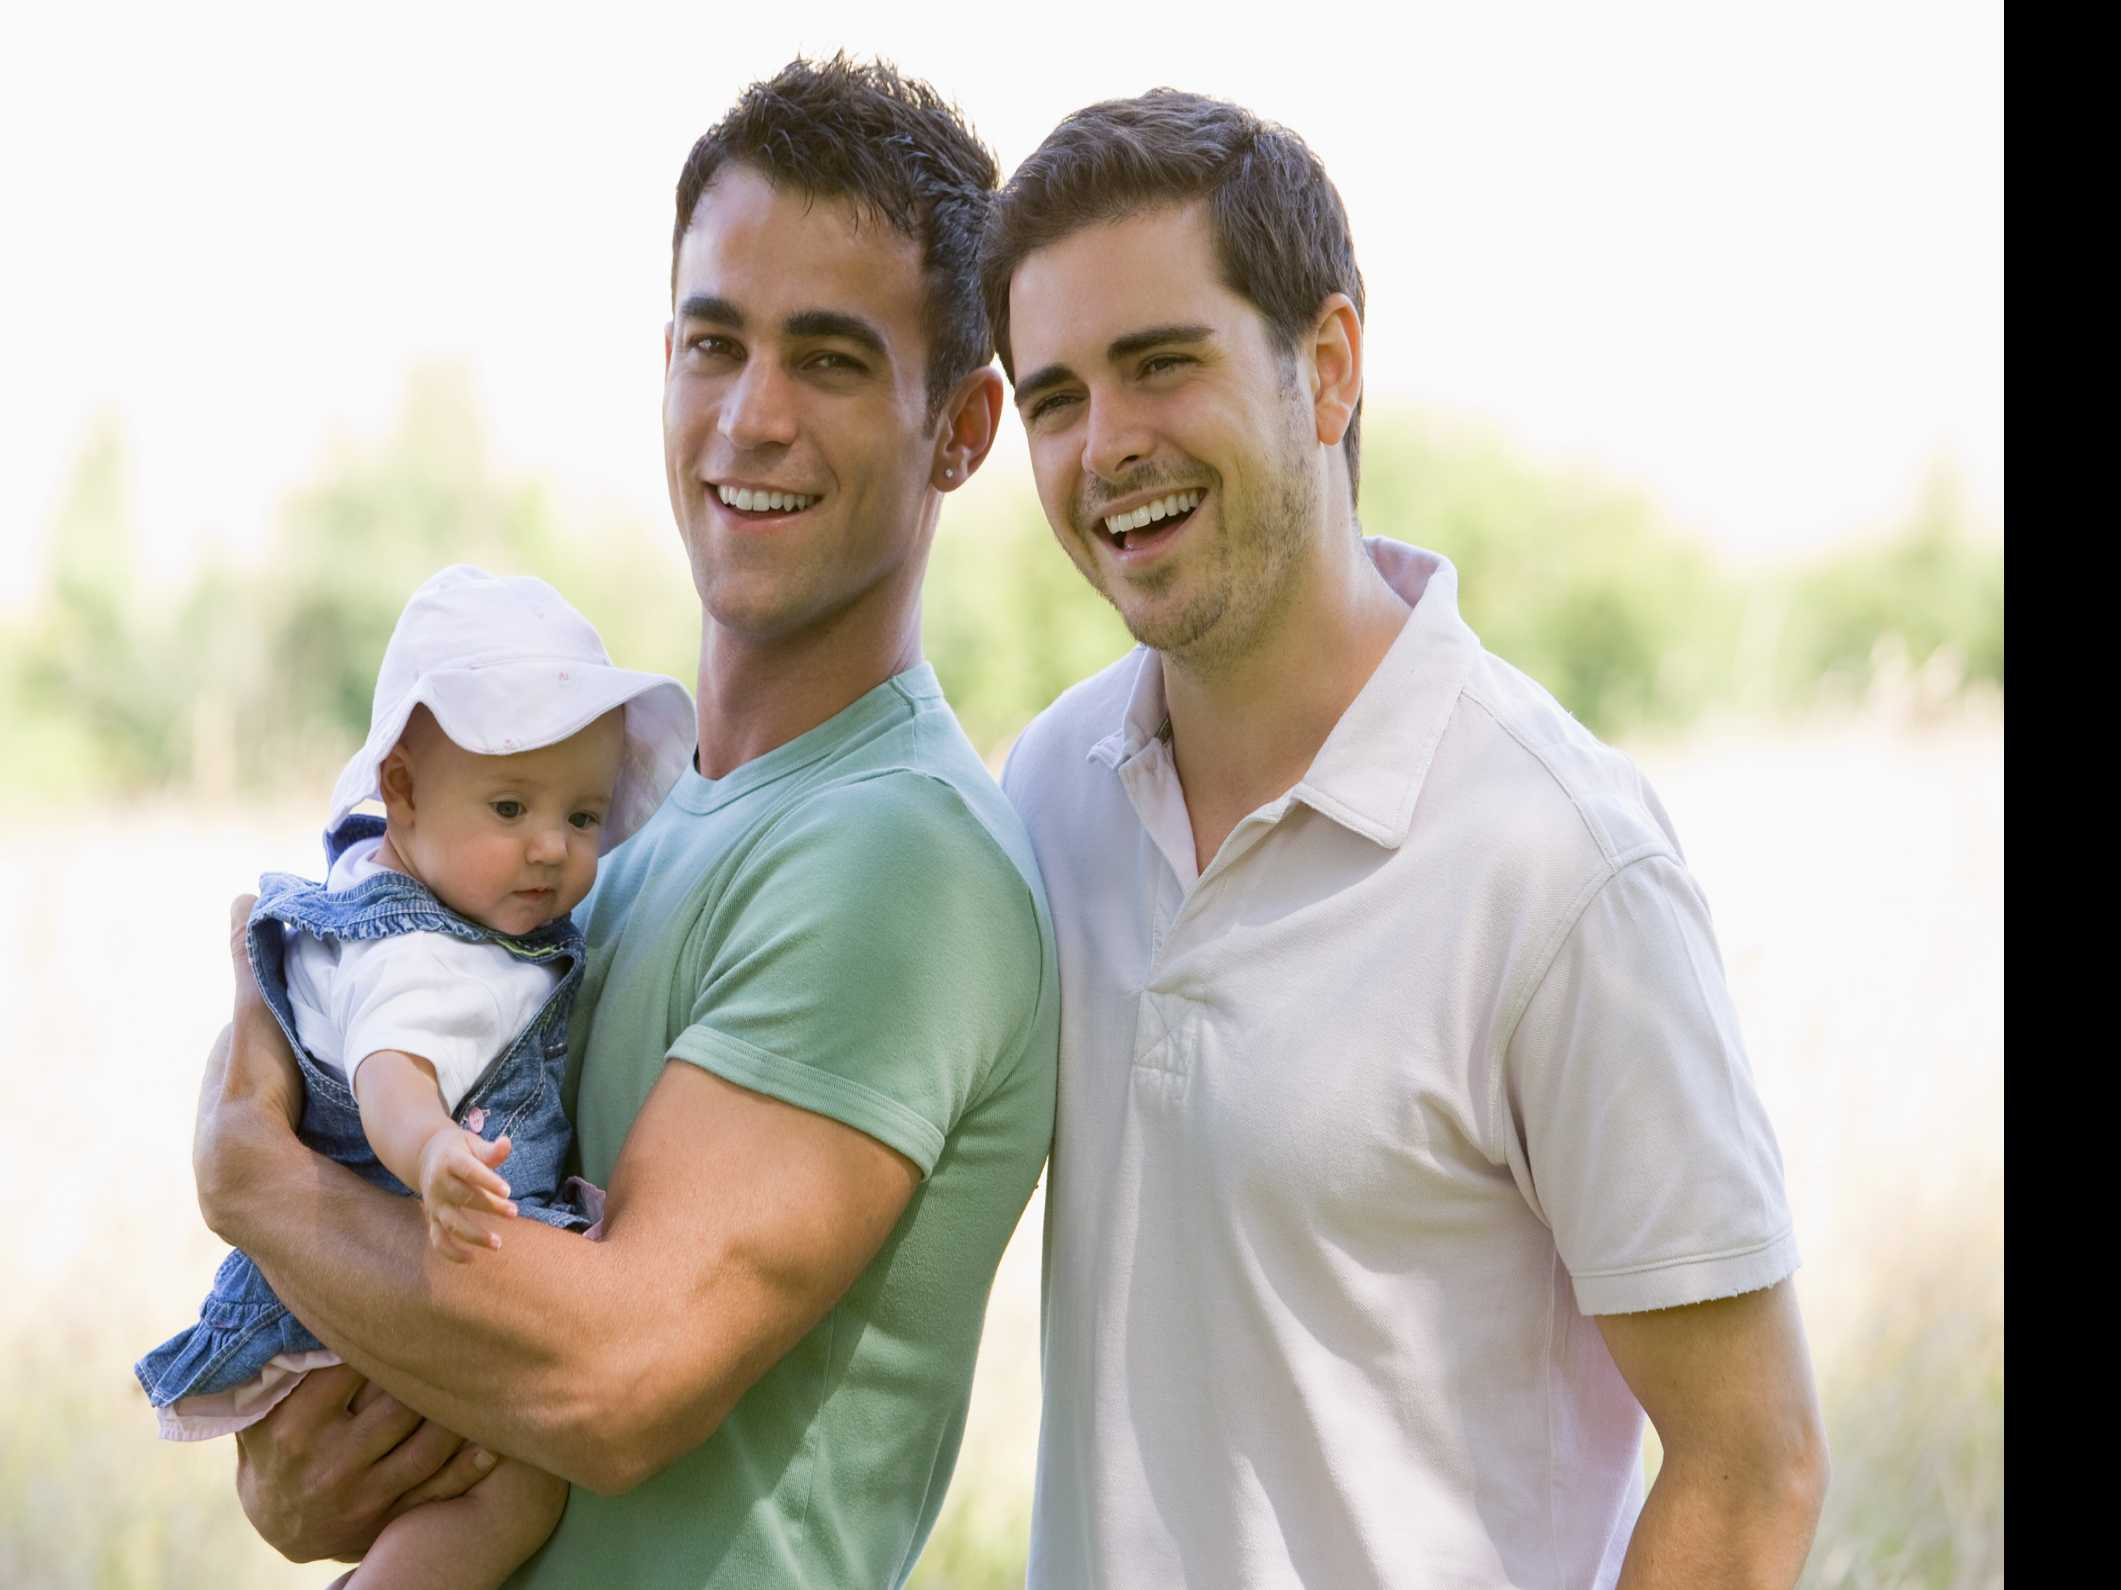 Michigan Adoption Agency Flips LGBT Policy After Settlement